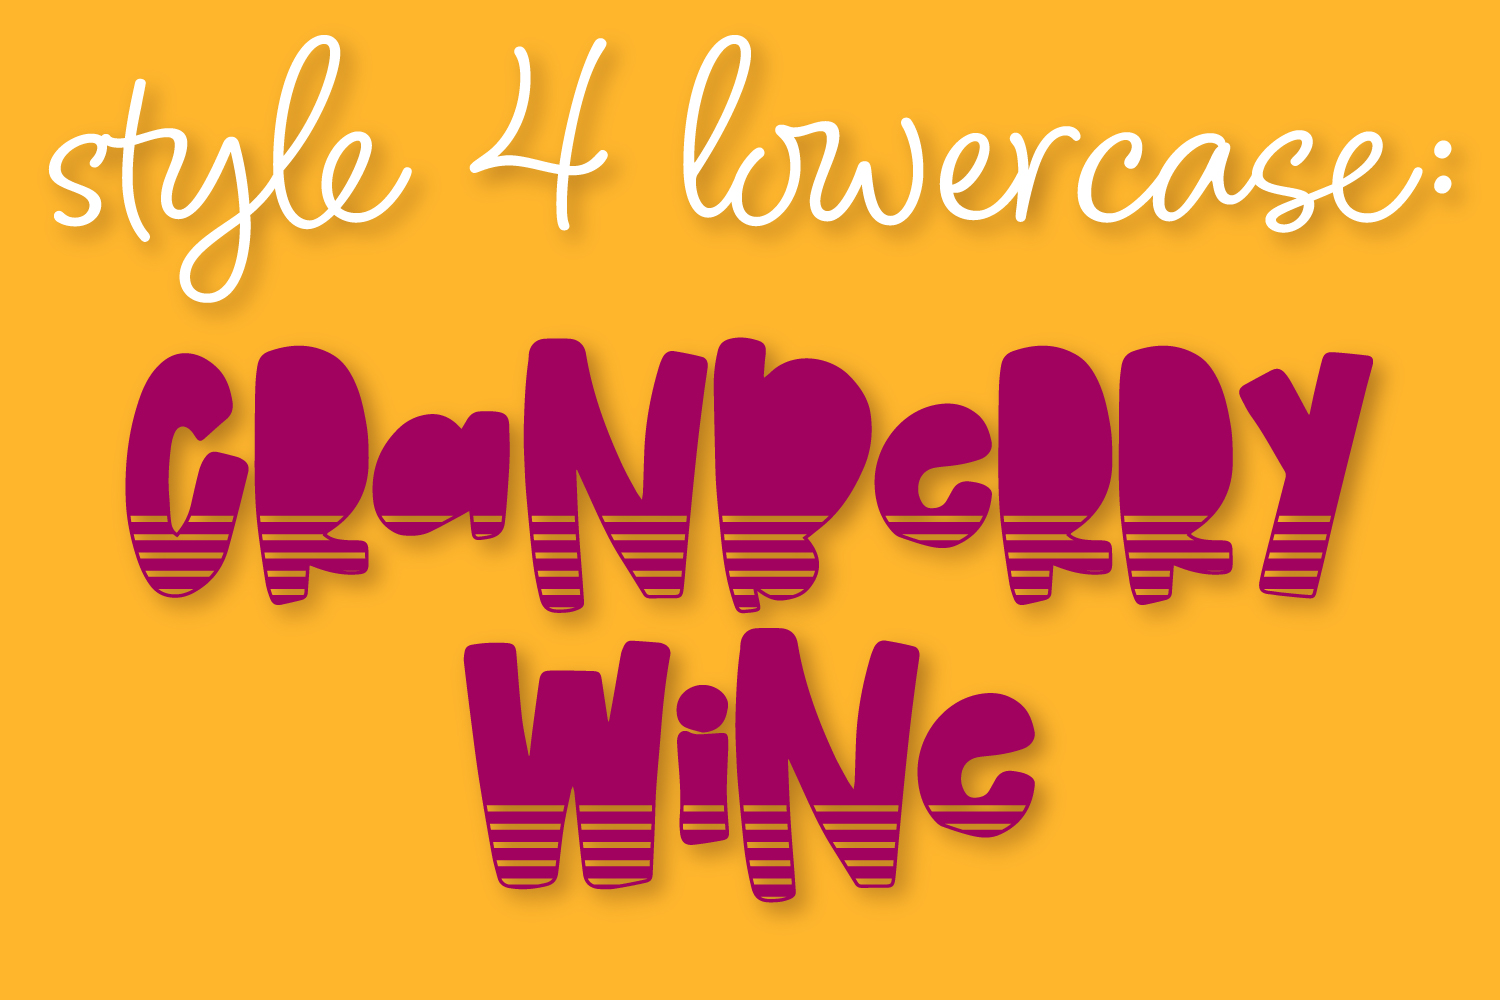 Cranberry Wine - A Striped Font Family of 6 New Fonts! example image 5